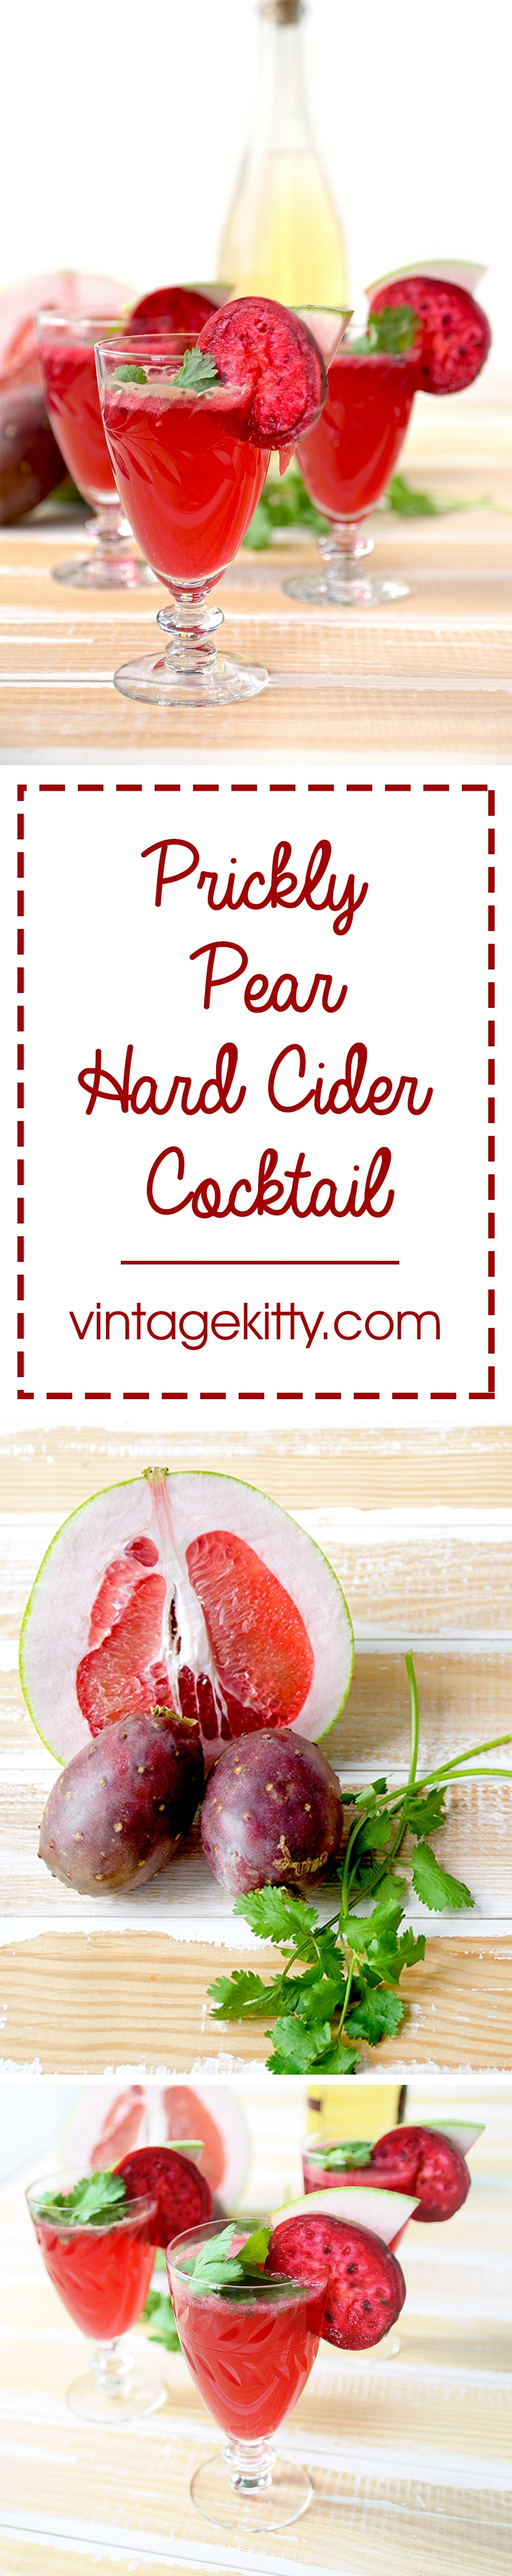 Prickly Pear Hard Cider Cocktail Pin - Prickly Pear Hard Cider Cocktail </br>with Cilantro and Pomelo